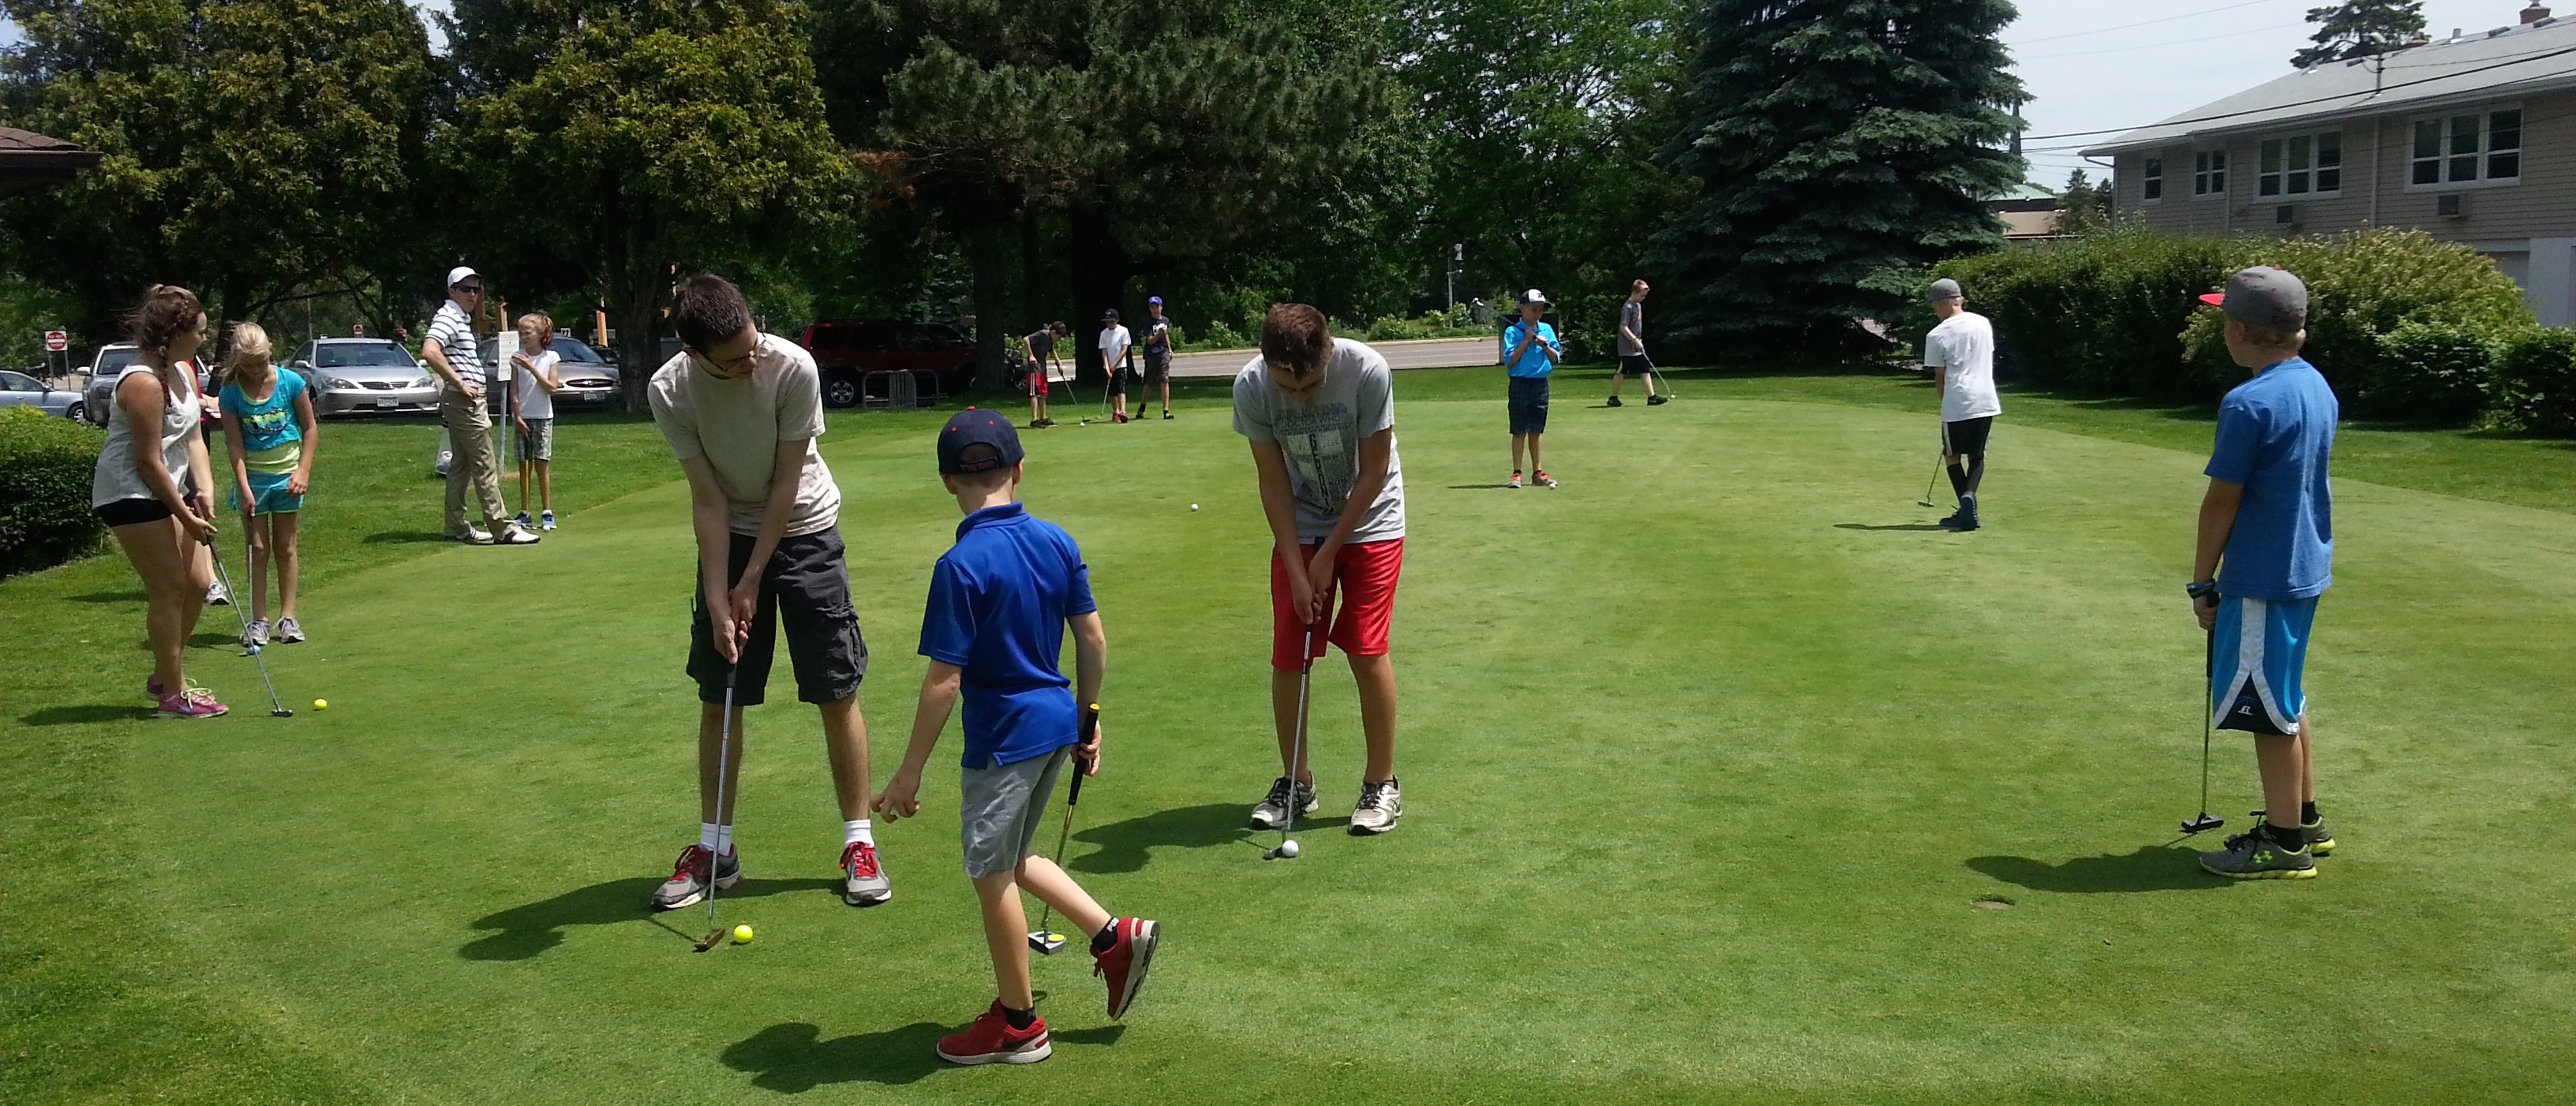 Young golfers on putting green